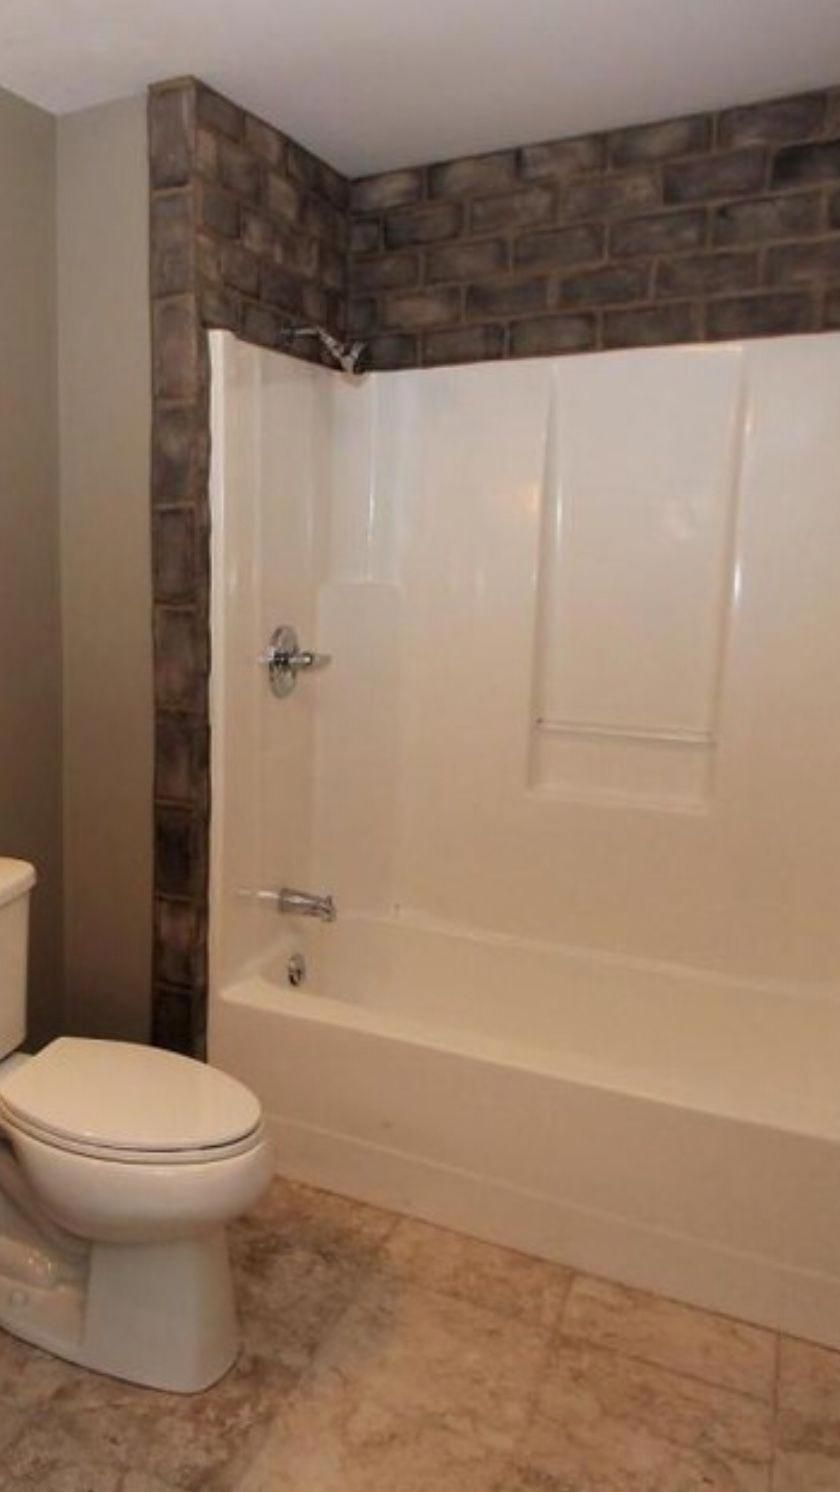 Pin By Amands Conway On Bed Bath In 2020 Tub Remodel Bathtub